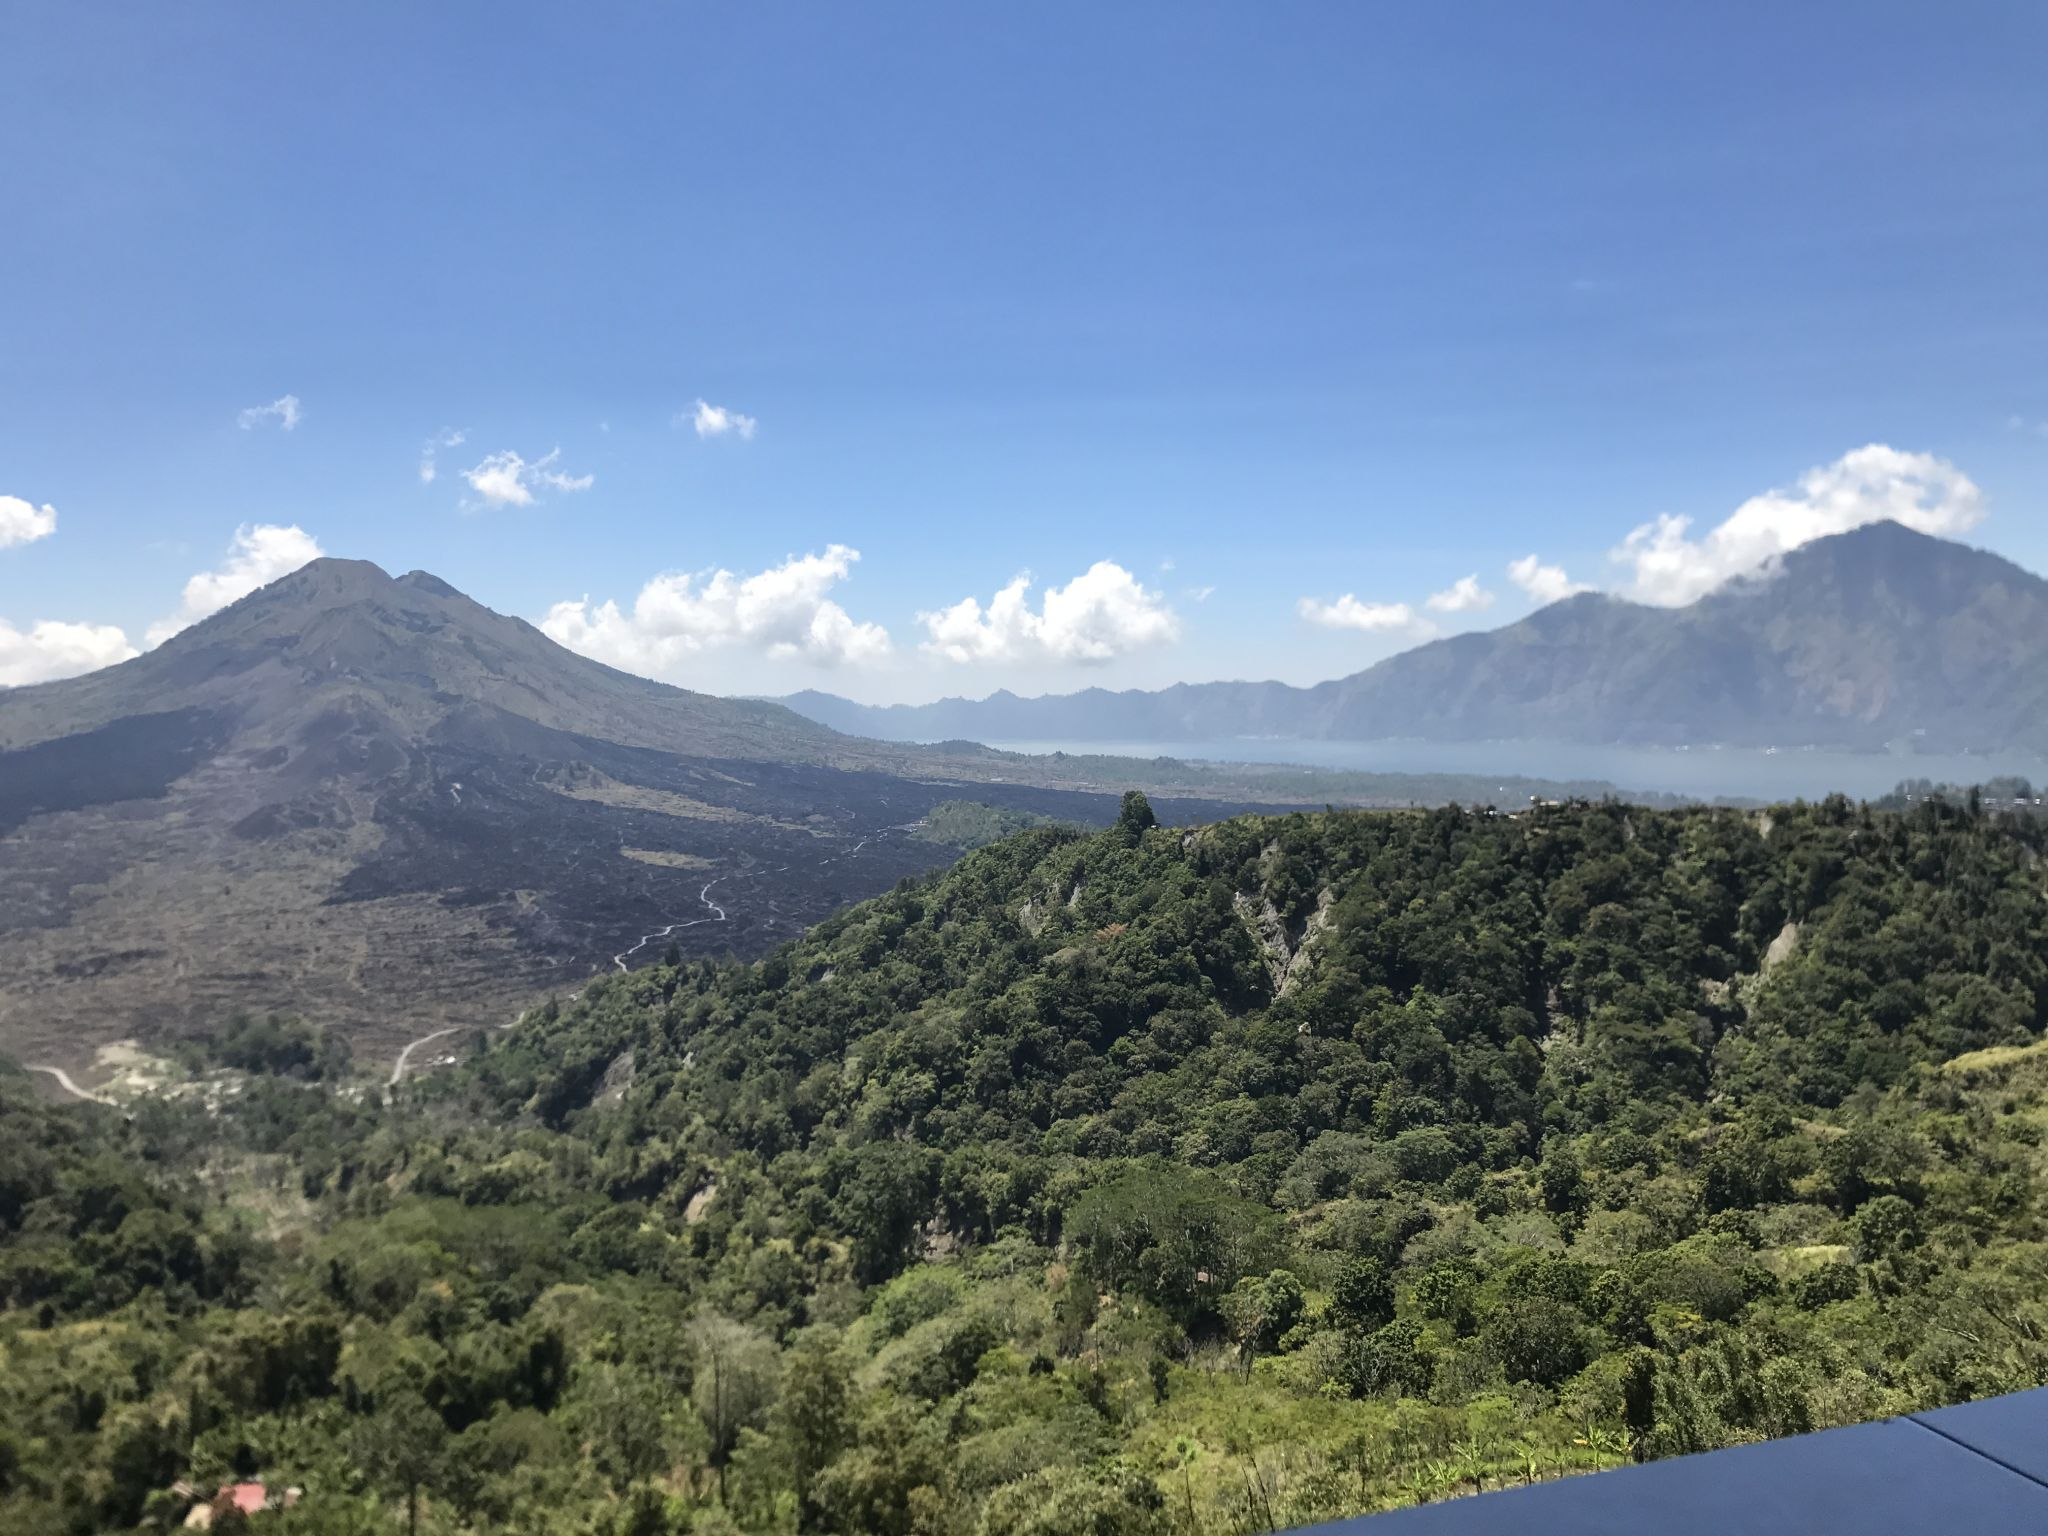 Indonesian Travel Diary – Lunch Stop & Coffee Plantation